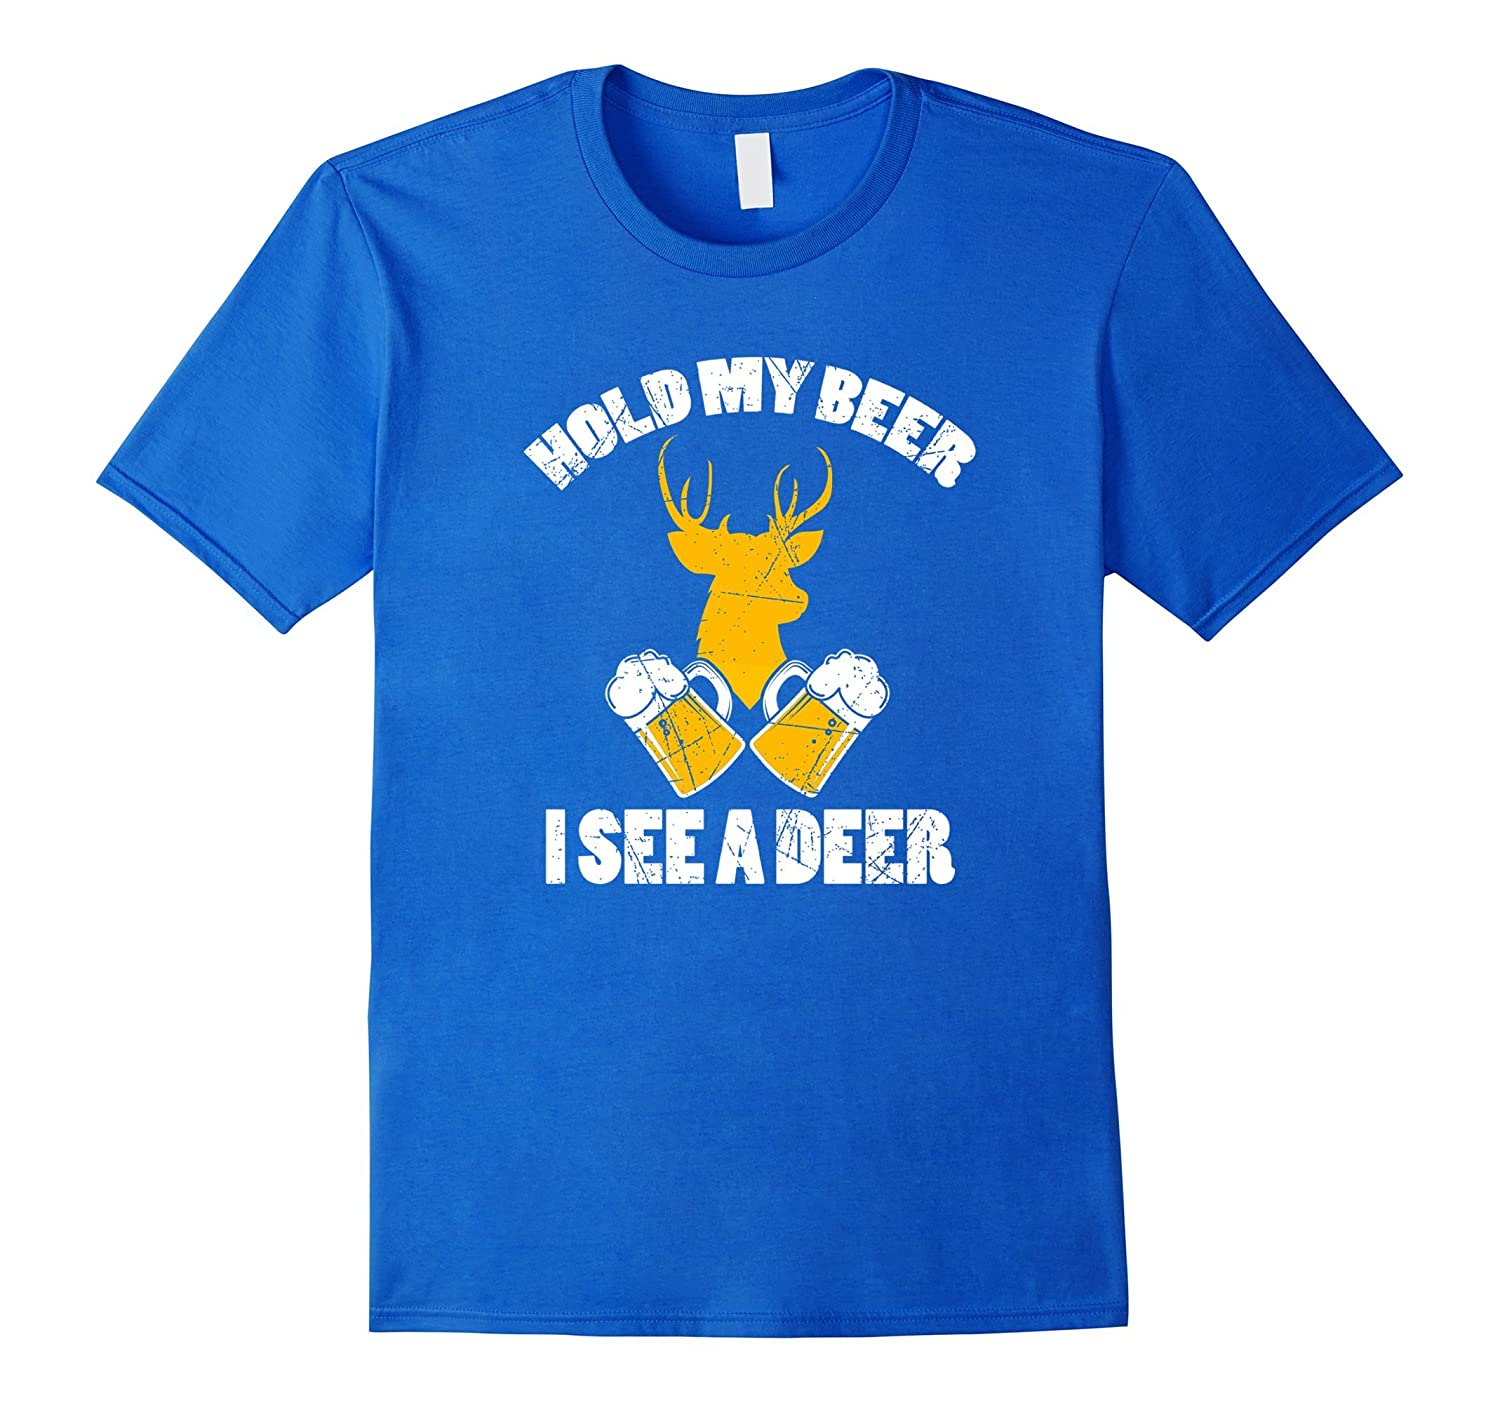 26c714ab Hold My Beer I See a Deer Hunting Beer Drinker Shirt Hunter-TH ...